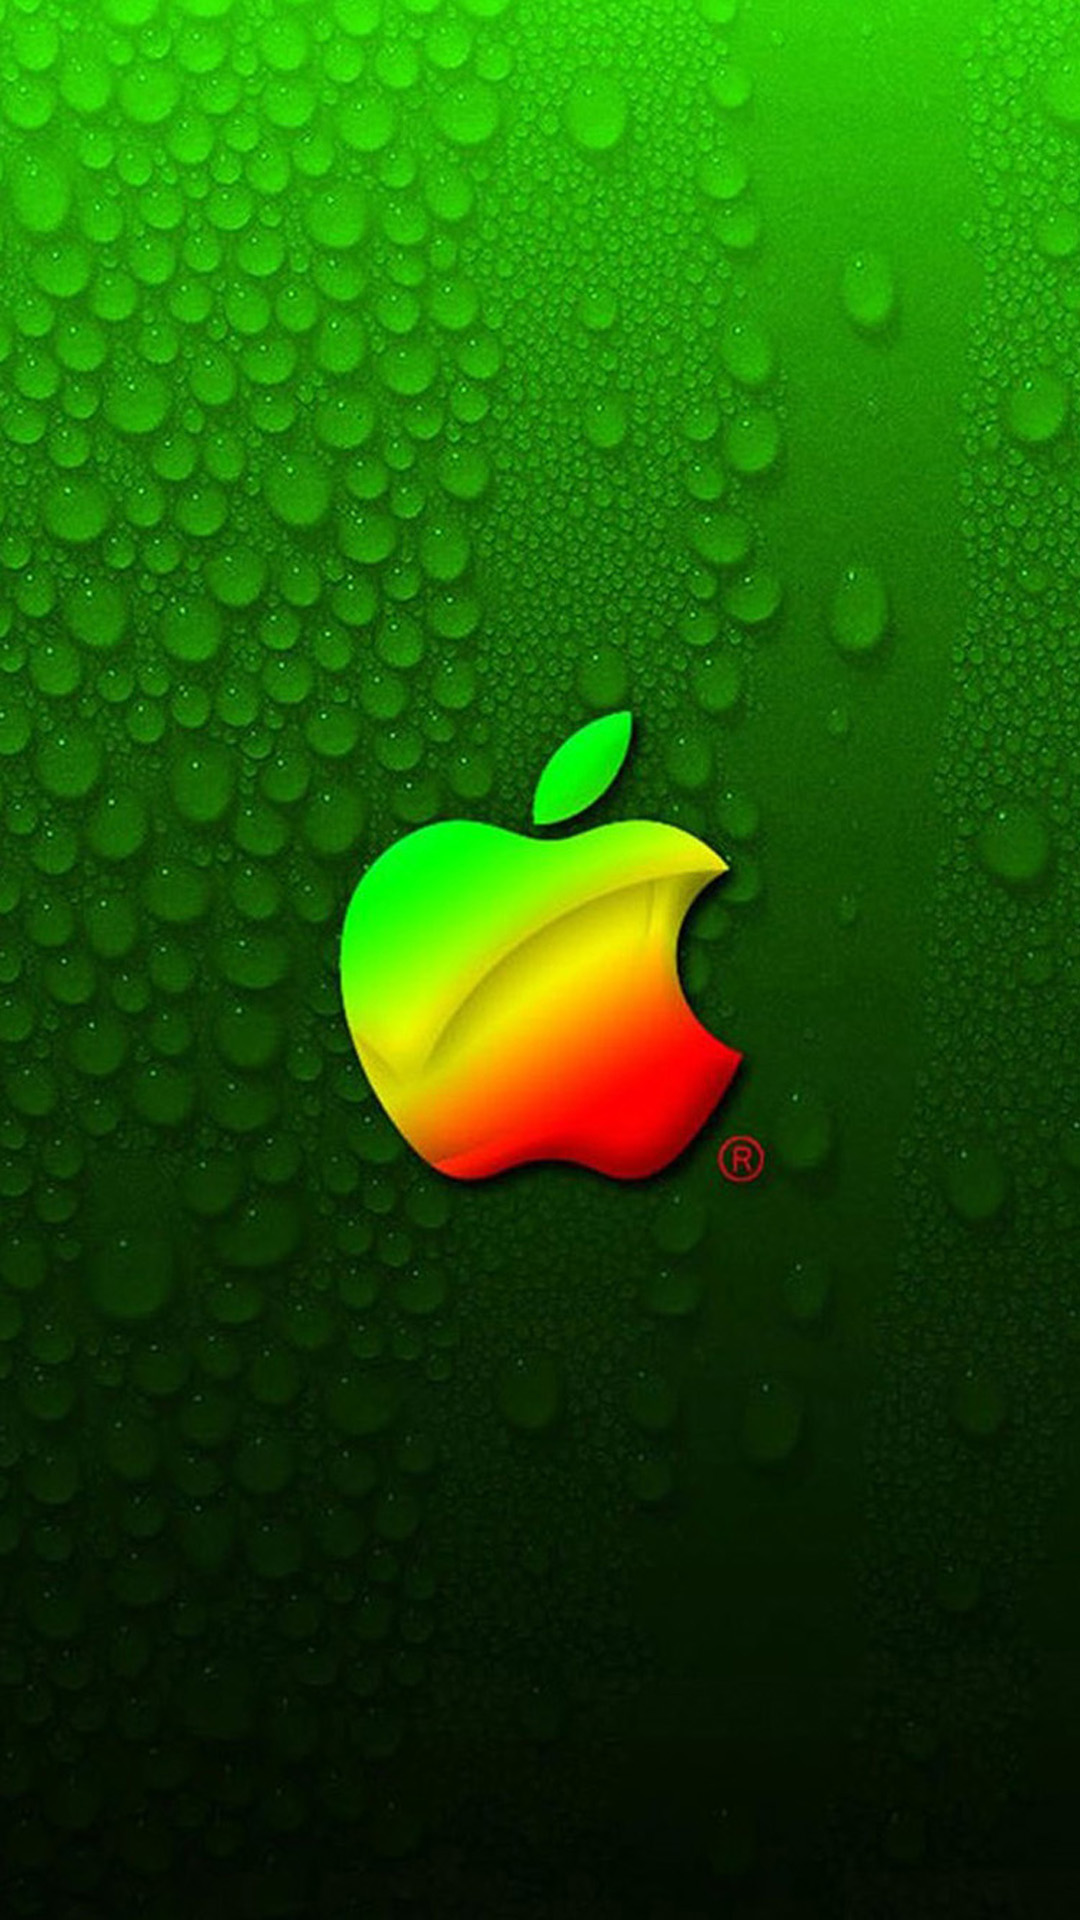 Fall Wallpaper For My Phone Download Colorful Apple Logo Wallpaper Gallery